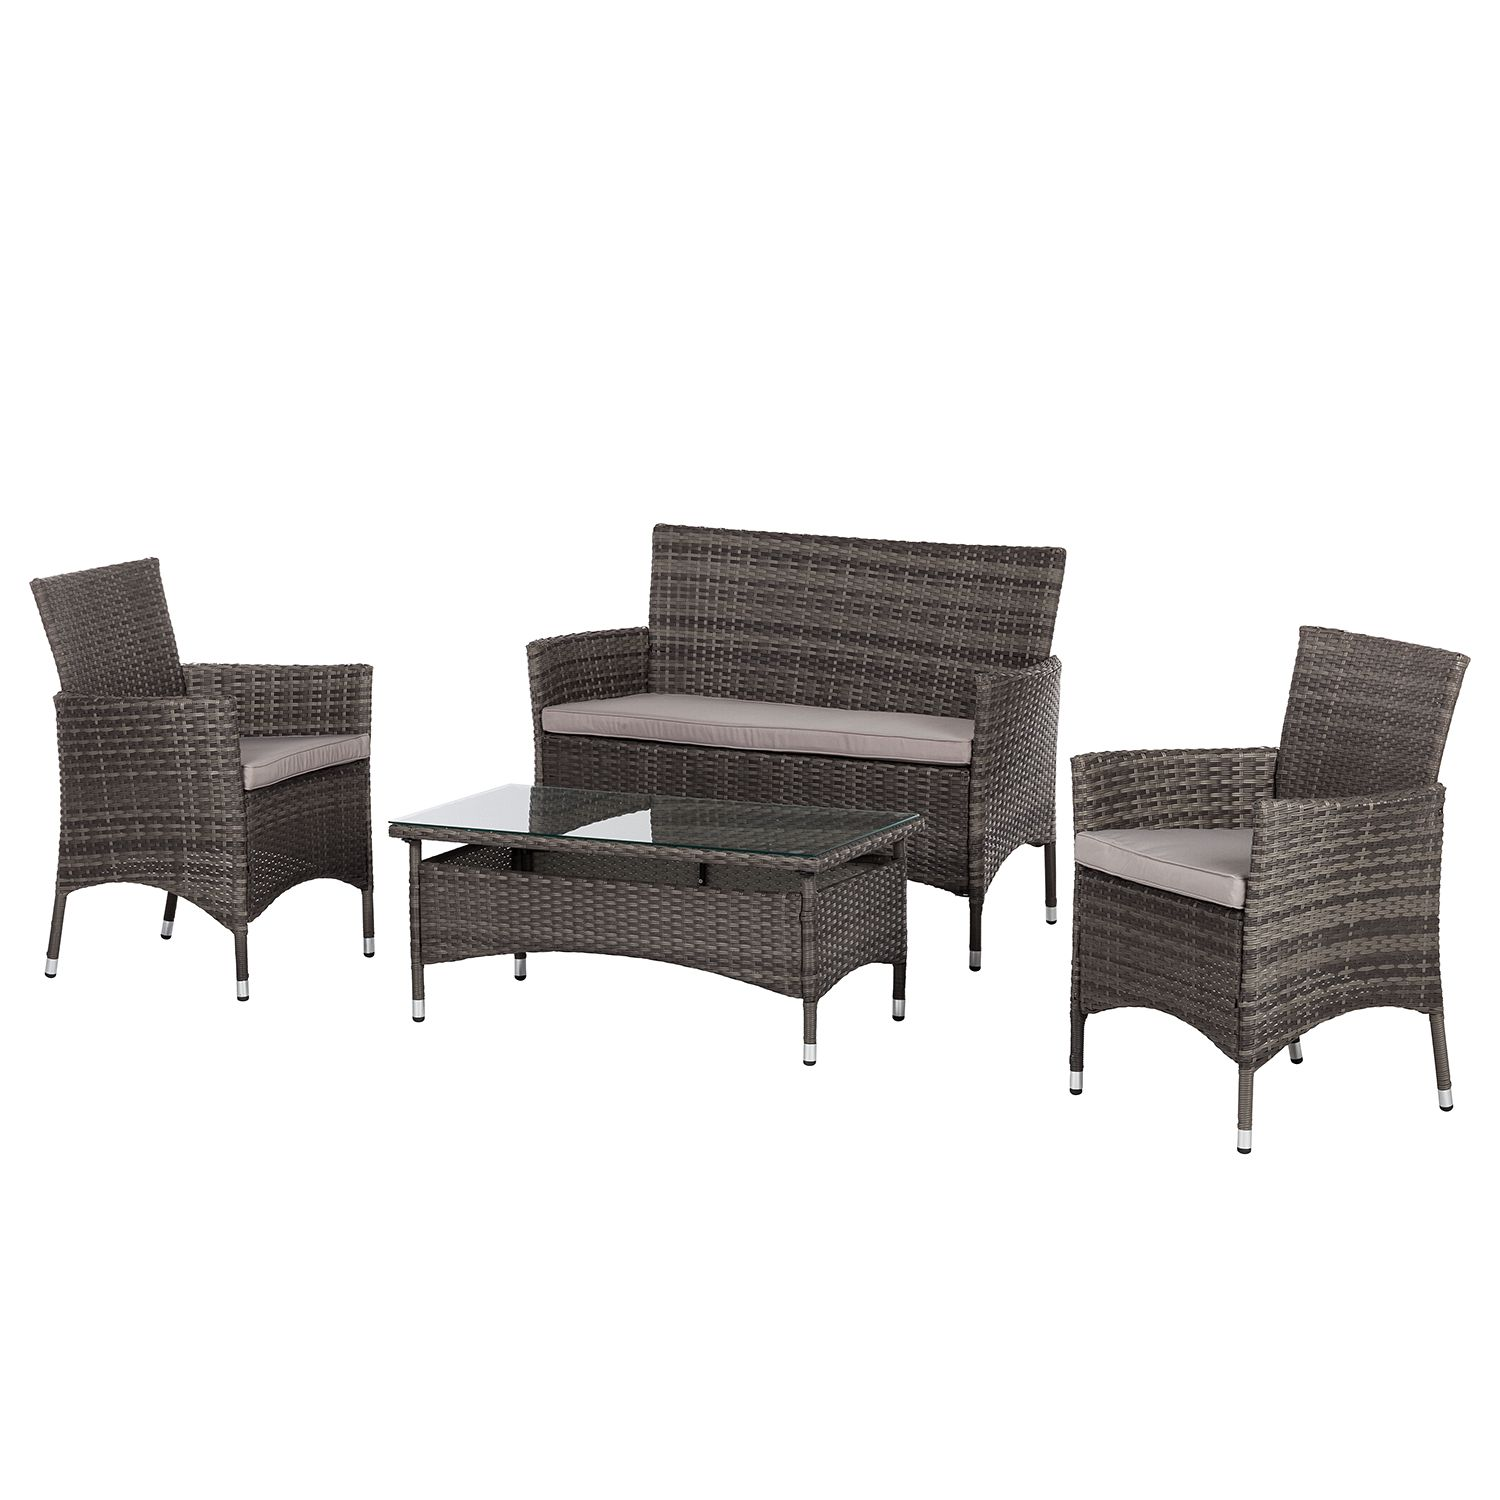 gartensitzgruppe bellariva 4 teilig polyrattan grau kings garden jetzt kaufen. Black Bedroom Furniture Sets. Home Design Ideas